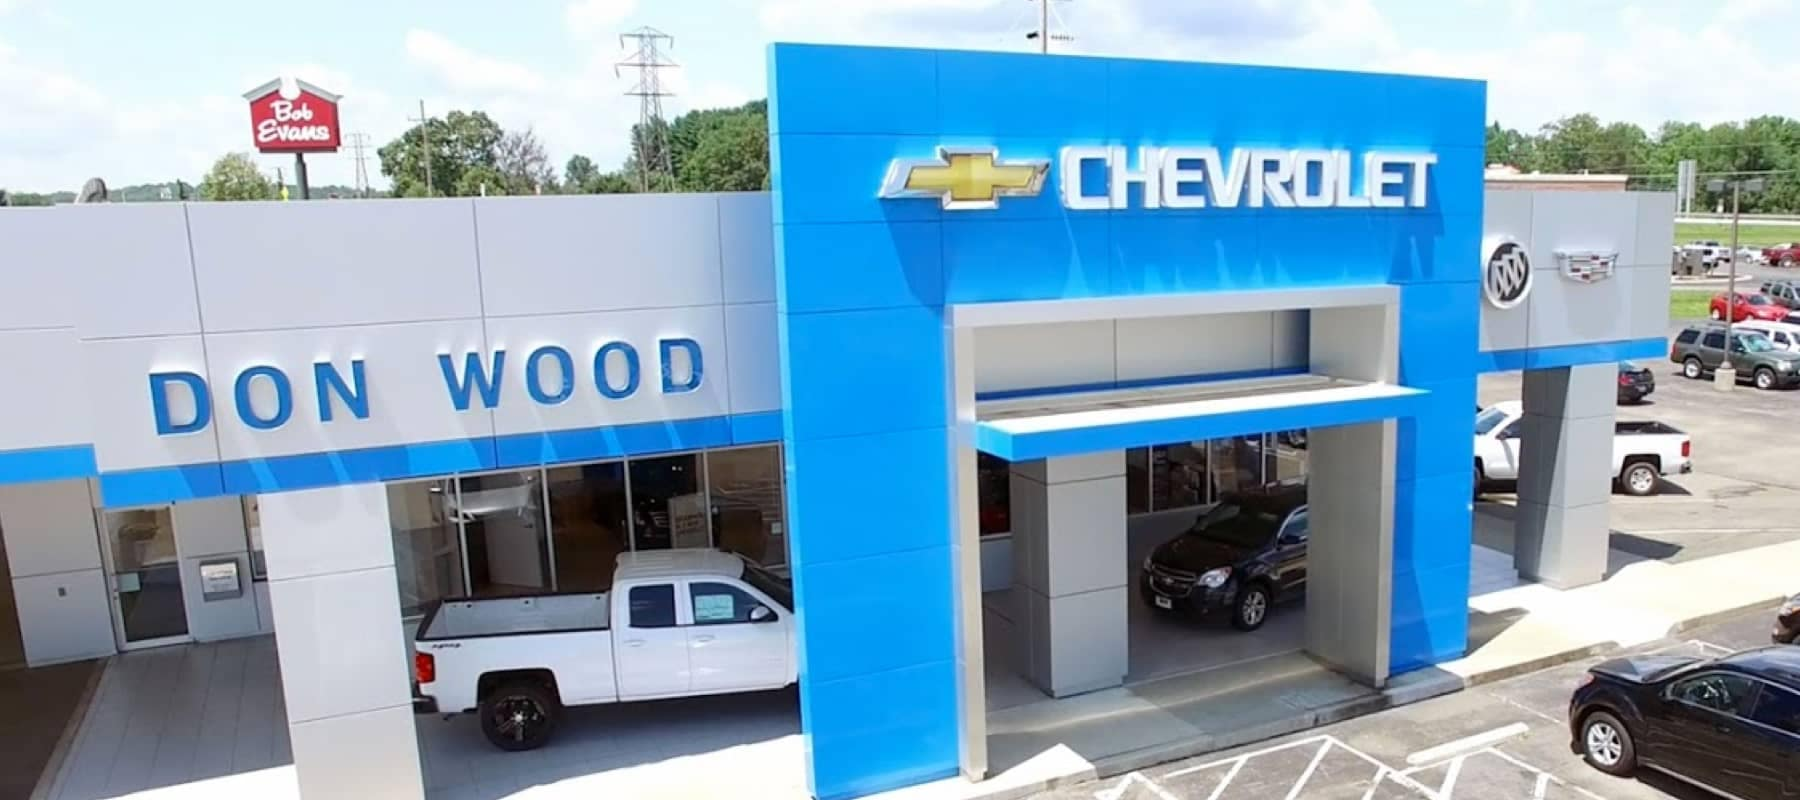 exterior view of dealership entrance